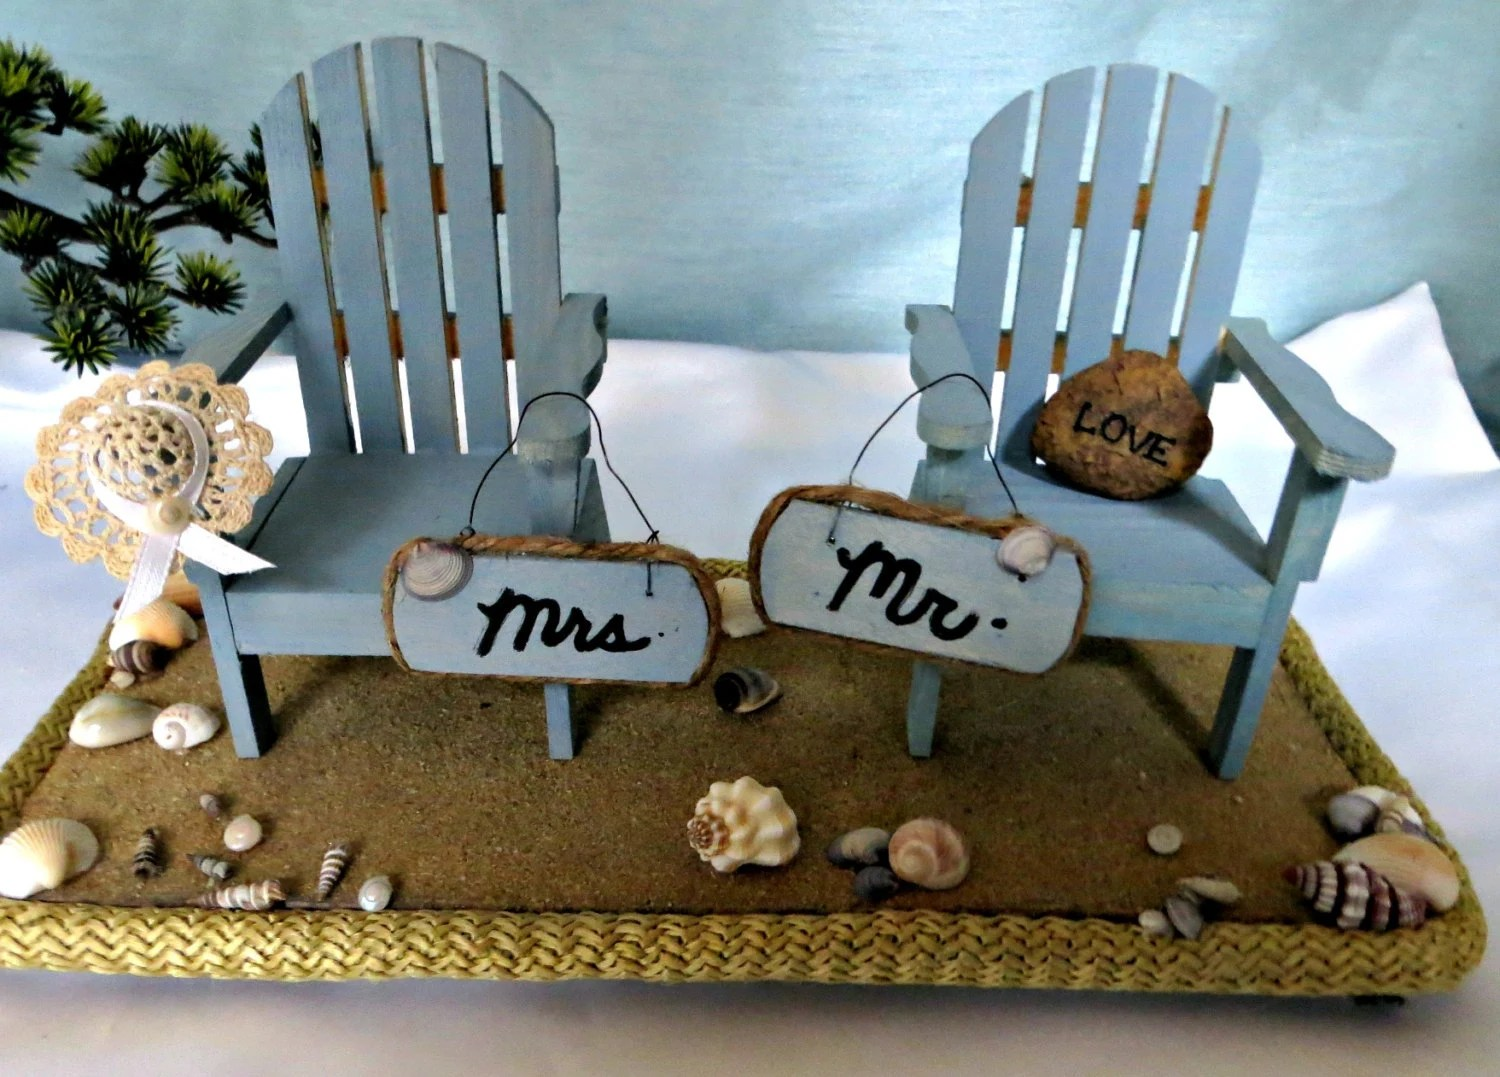 adirondack chair photo frame favors outside lounge chairs mr and mrs beach table top decor